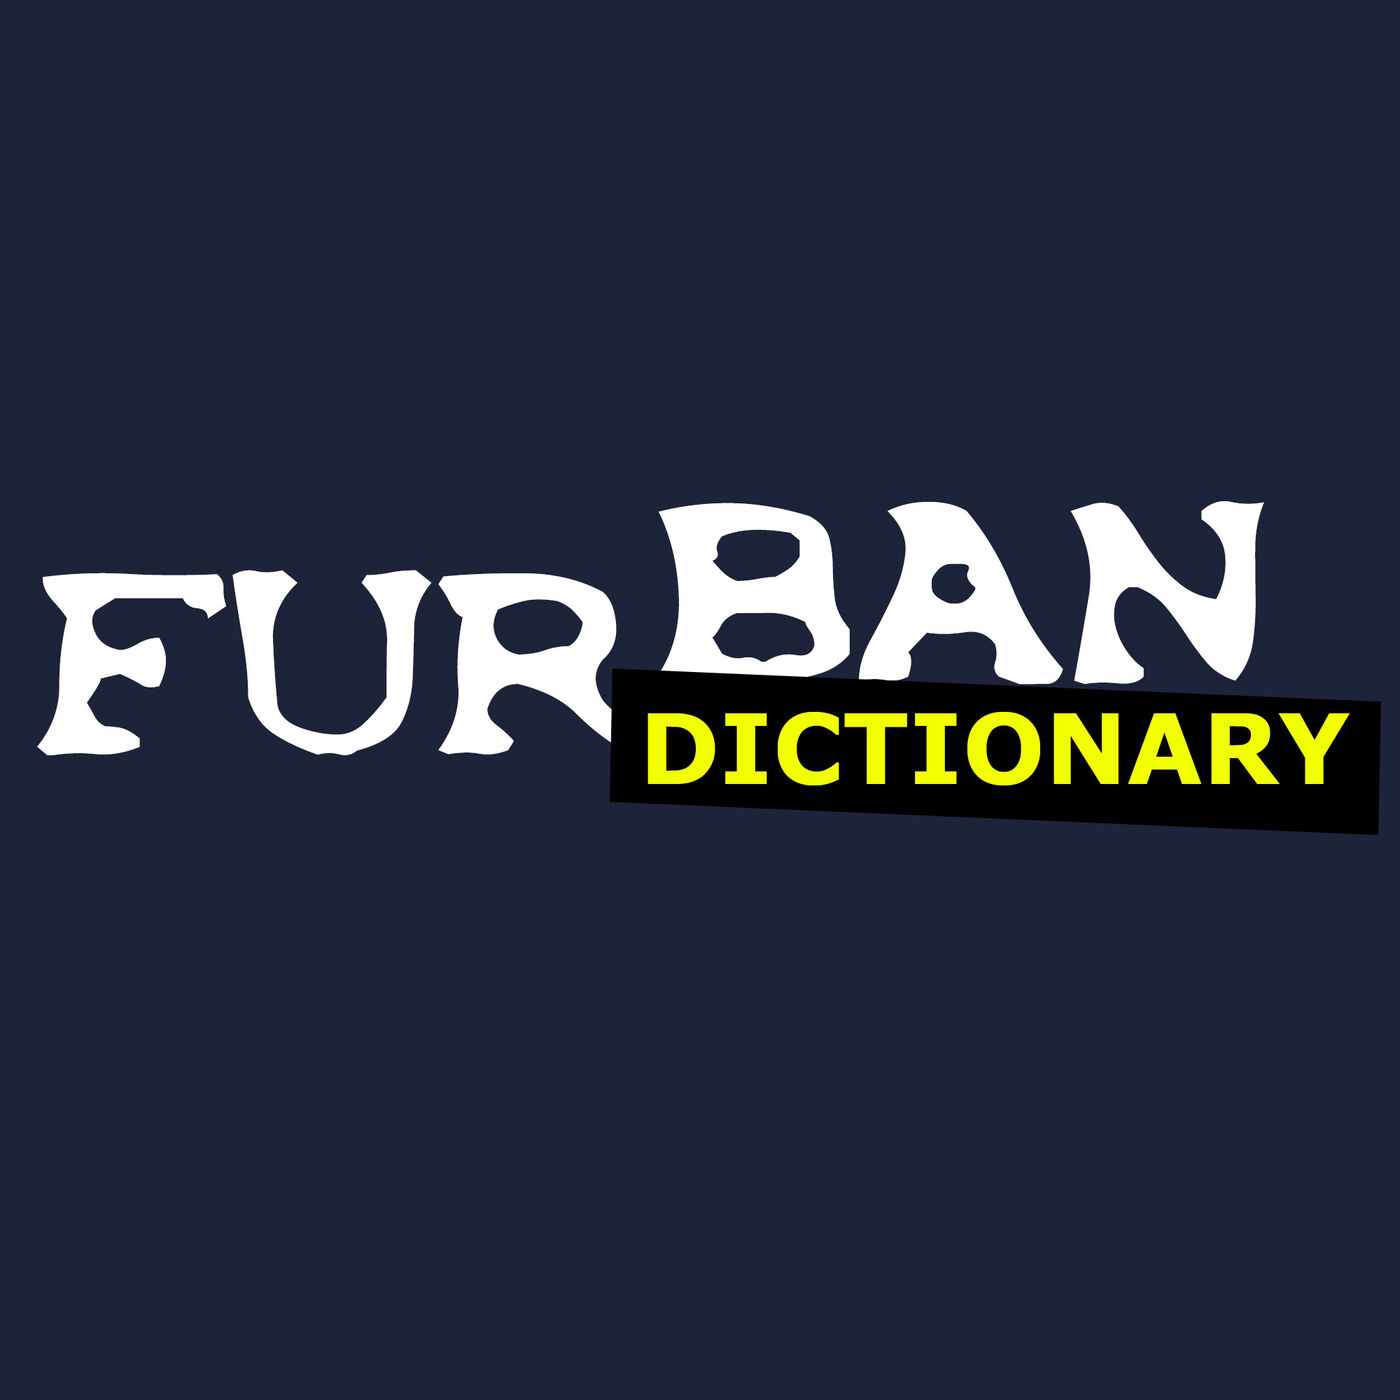 S4 Ep 2: Furban Dictionary